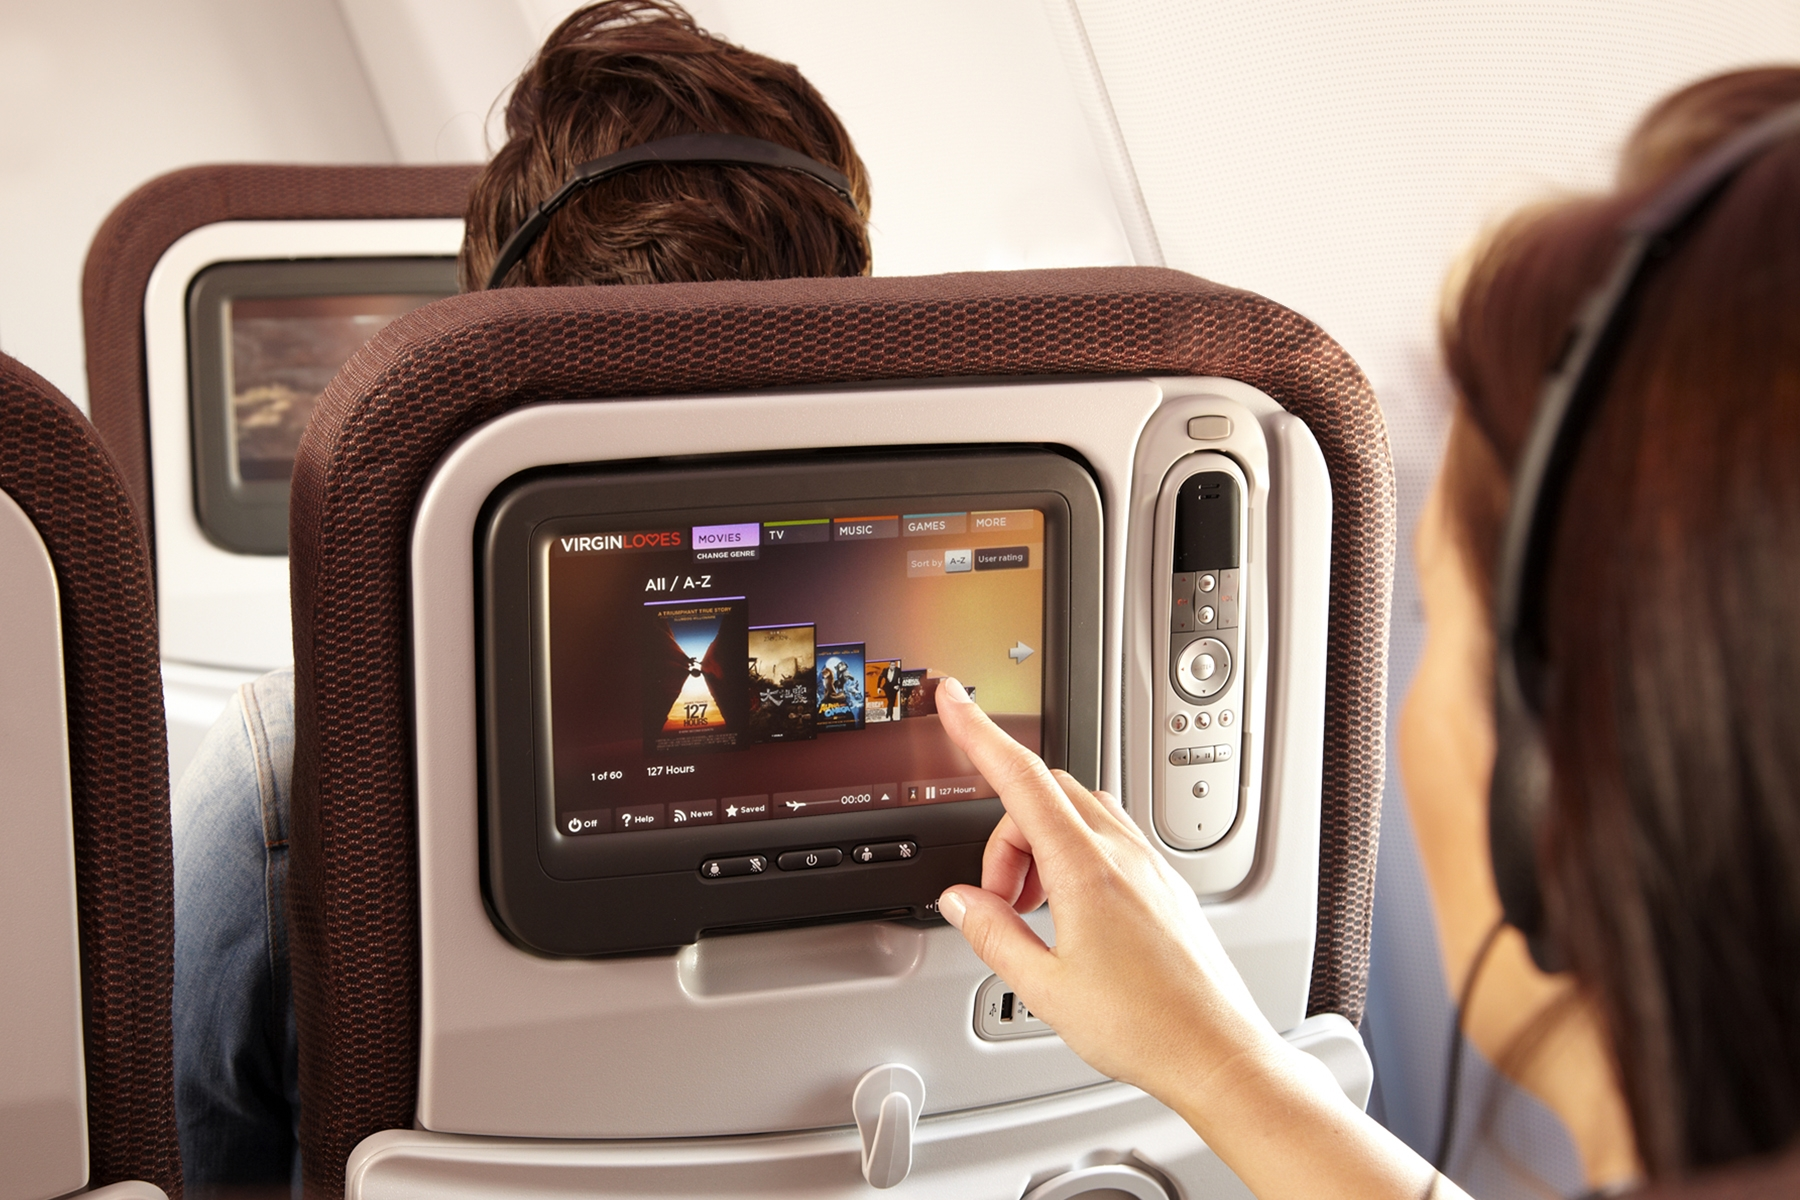 virgin australia planes with Virgin Atlantic Announce Inflight Entertainment As Soon As You Sit Down on Ryanair also The 10 Best Airlines For International Business Class in addition Fix Our Trains Now further Jetstar At Ten furthermore Qantas Pilots Back The Boeing 787 Dreamliner.